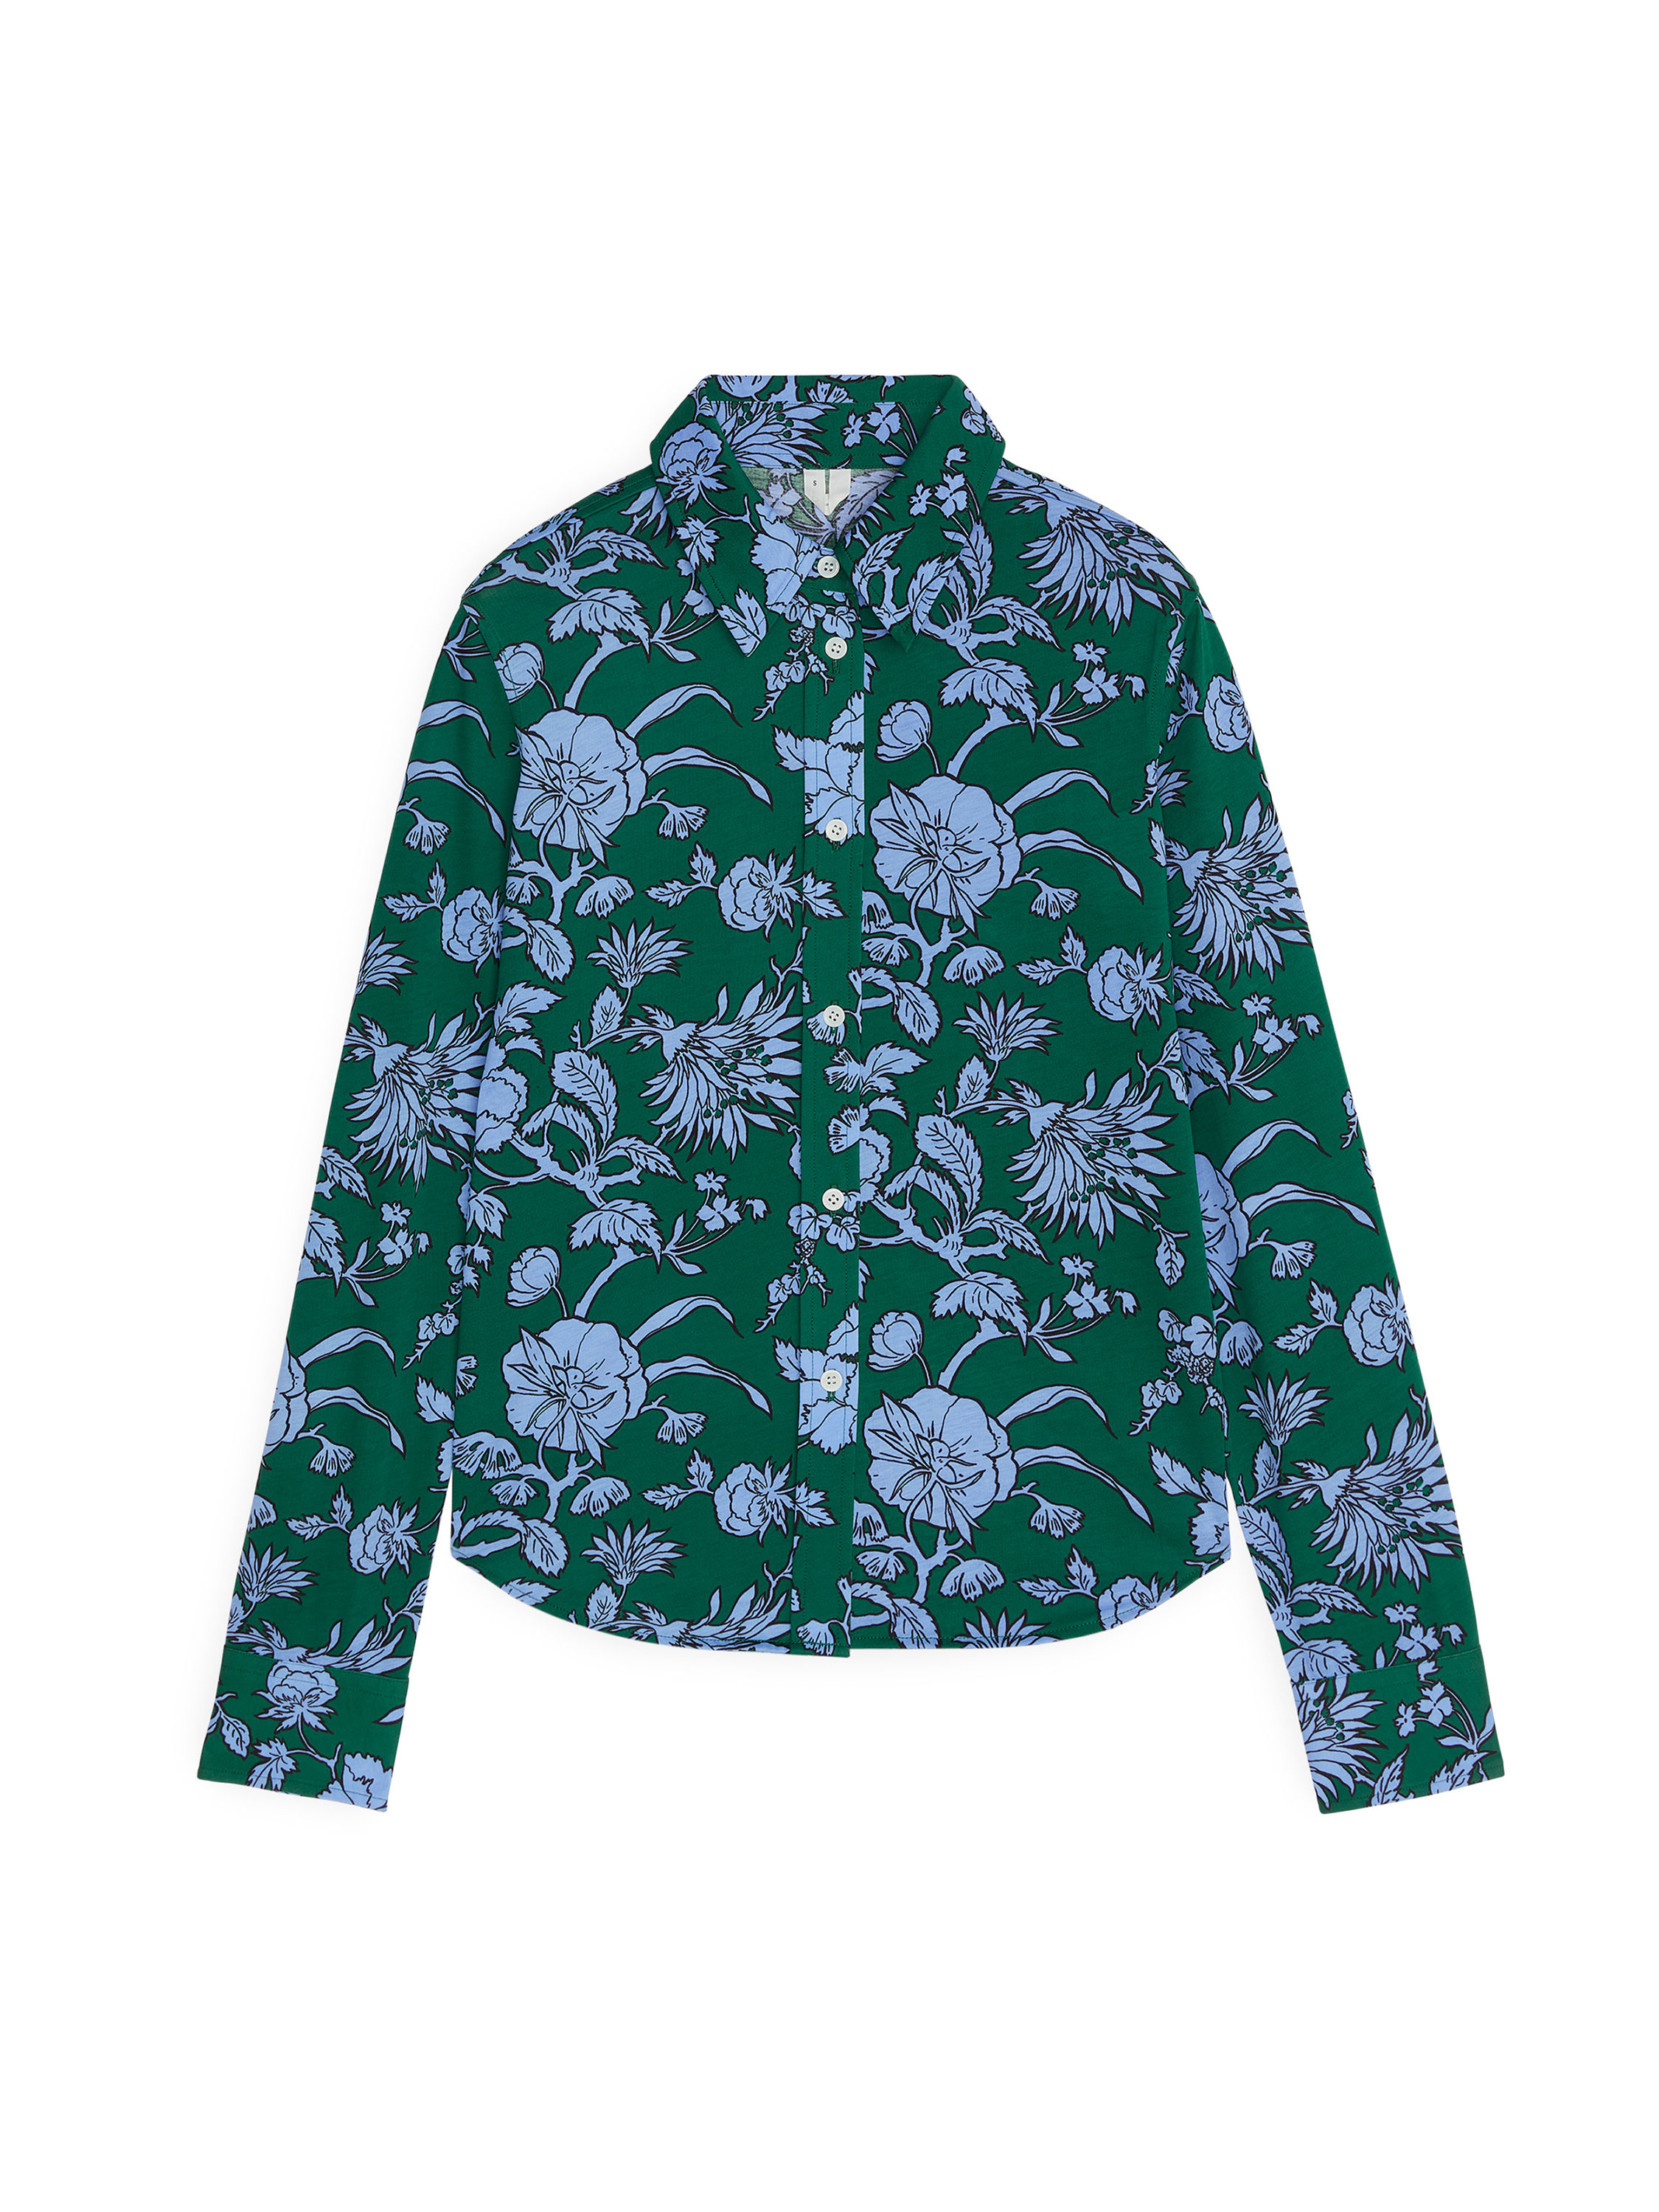 Fabric Swatch image of Arket floral jersey shirt in green